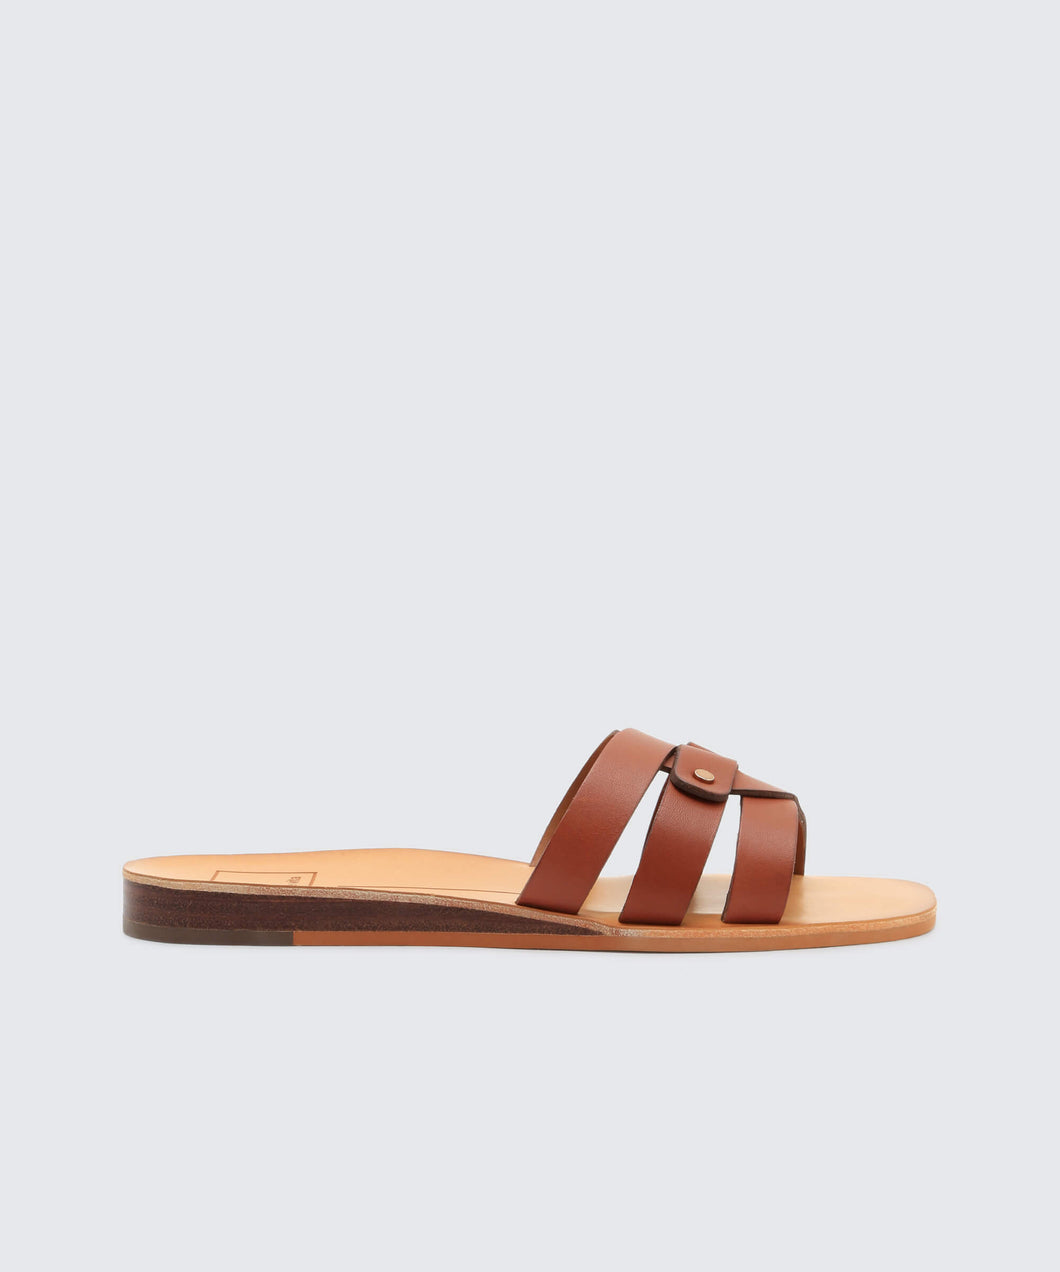 CAIT SANDALS BROWN -   Dolce Vita